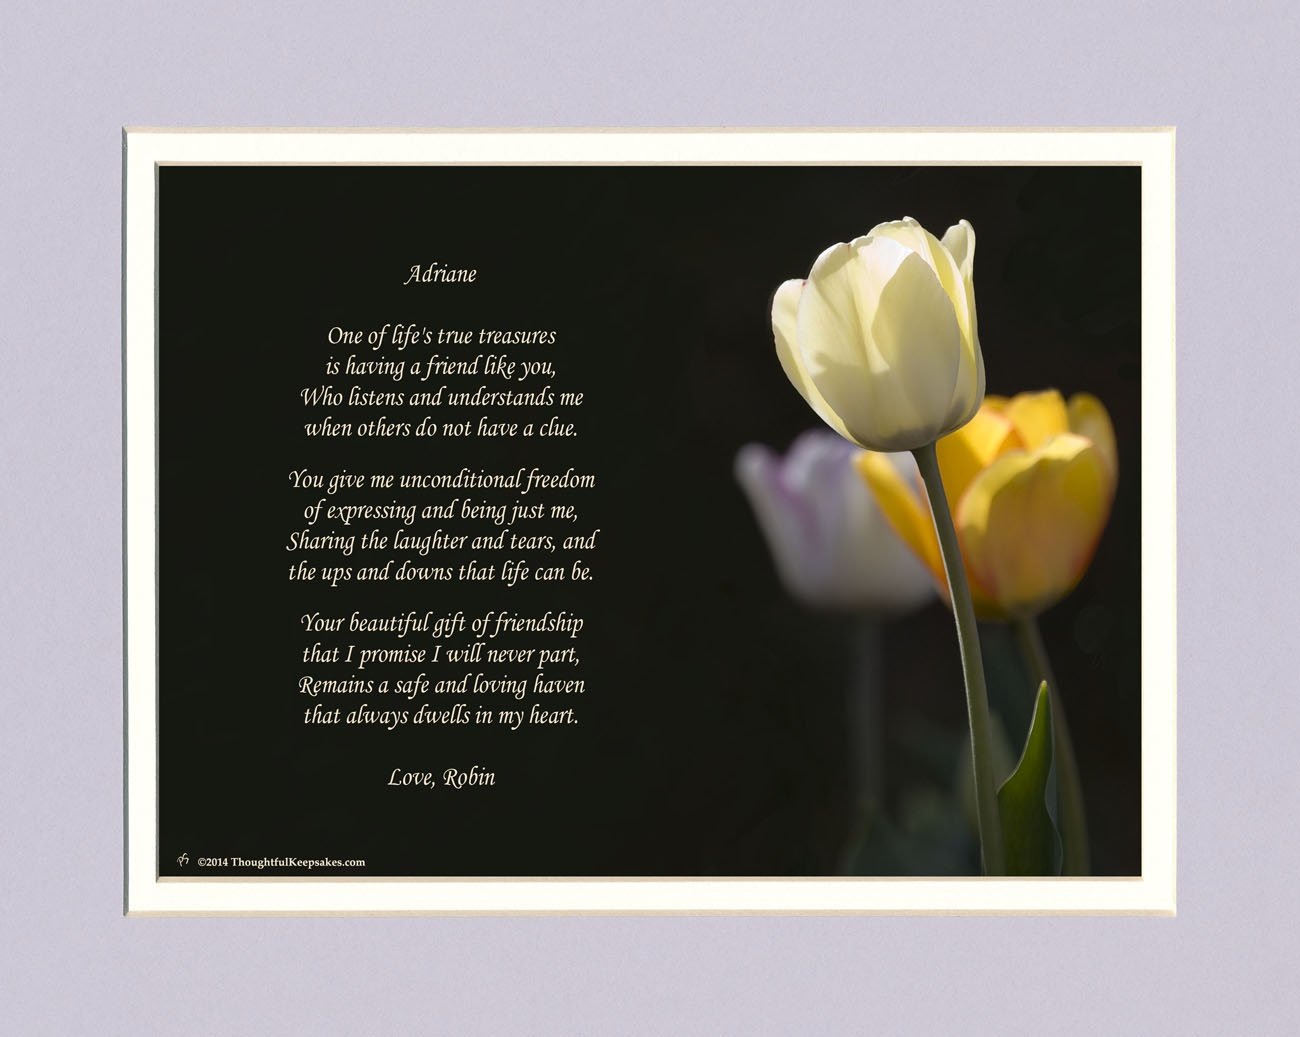 get quotations personalized friend gift white tulip photo with this beautiful friendship poem 8x10 double matted - What Should I Get My Best Friend For Christmas